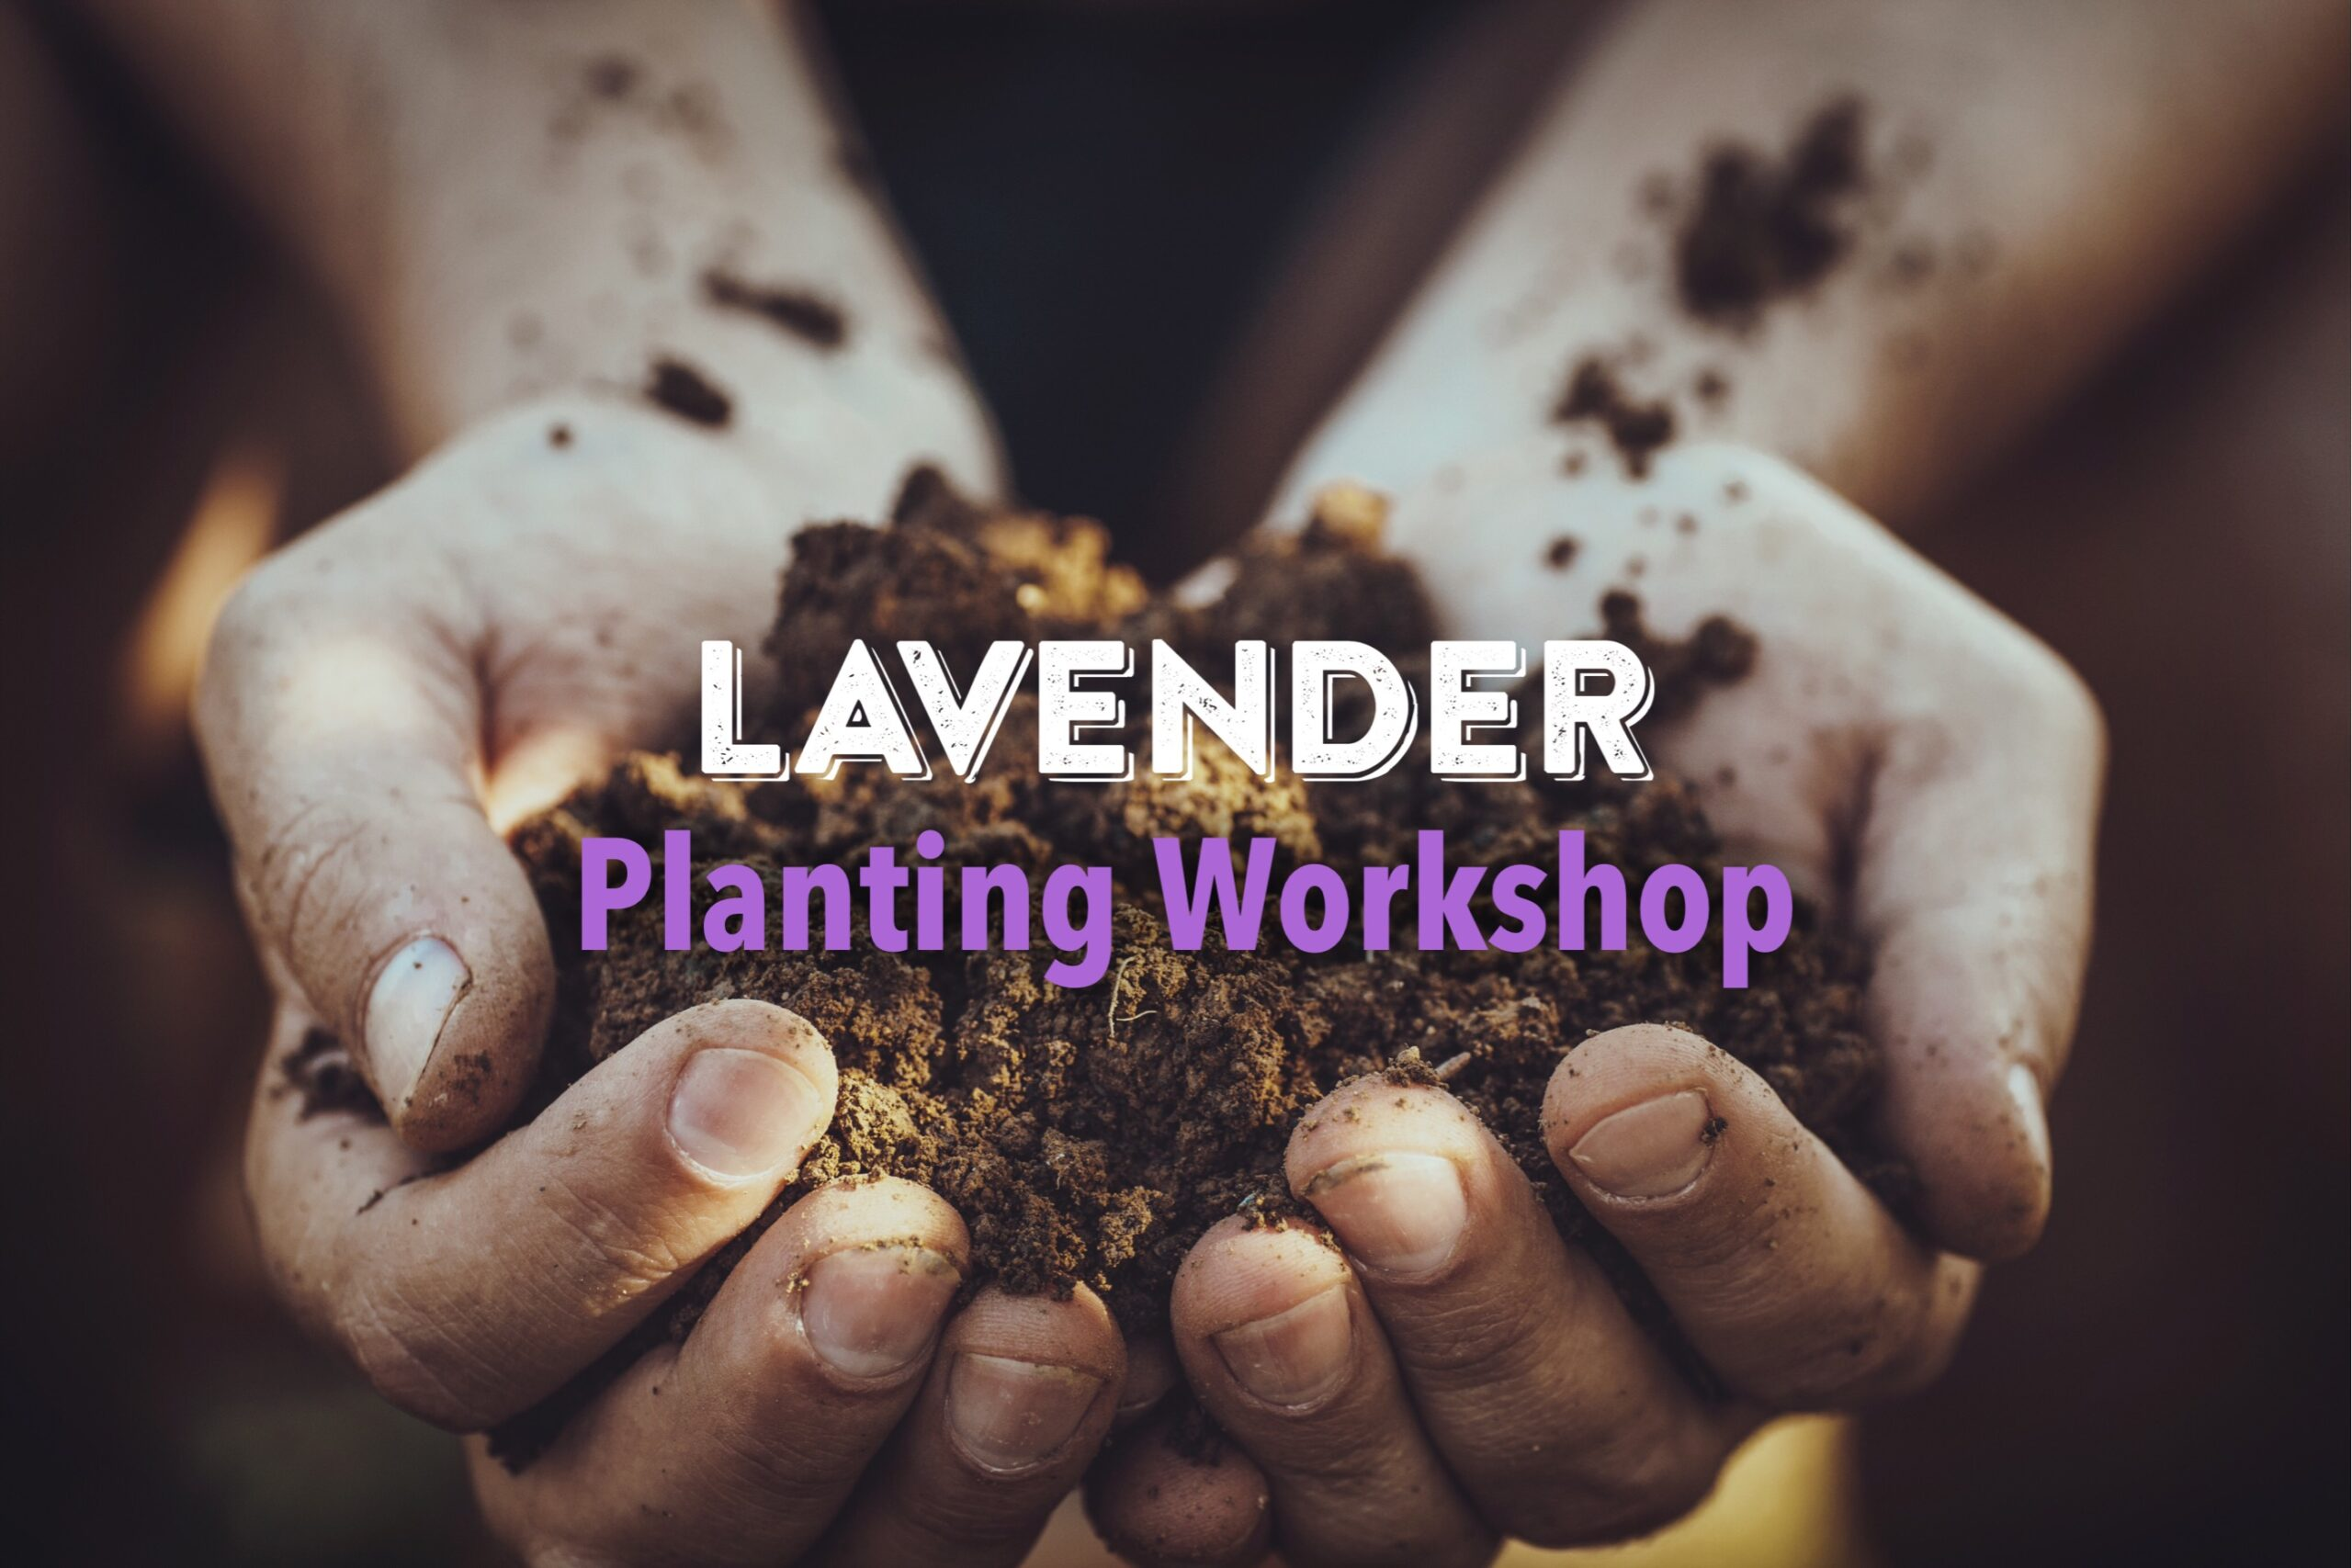 Lavender Planting Workshop